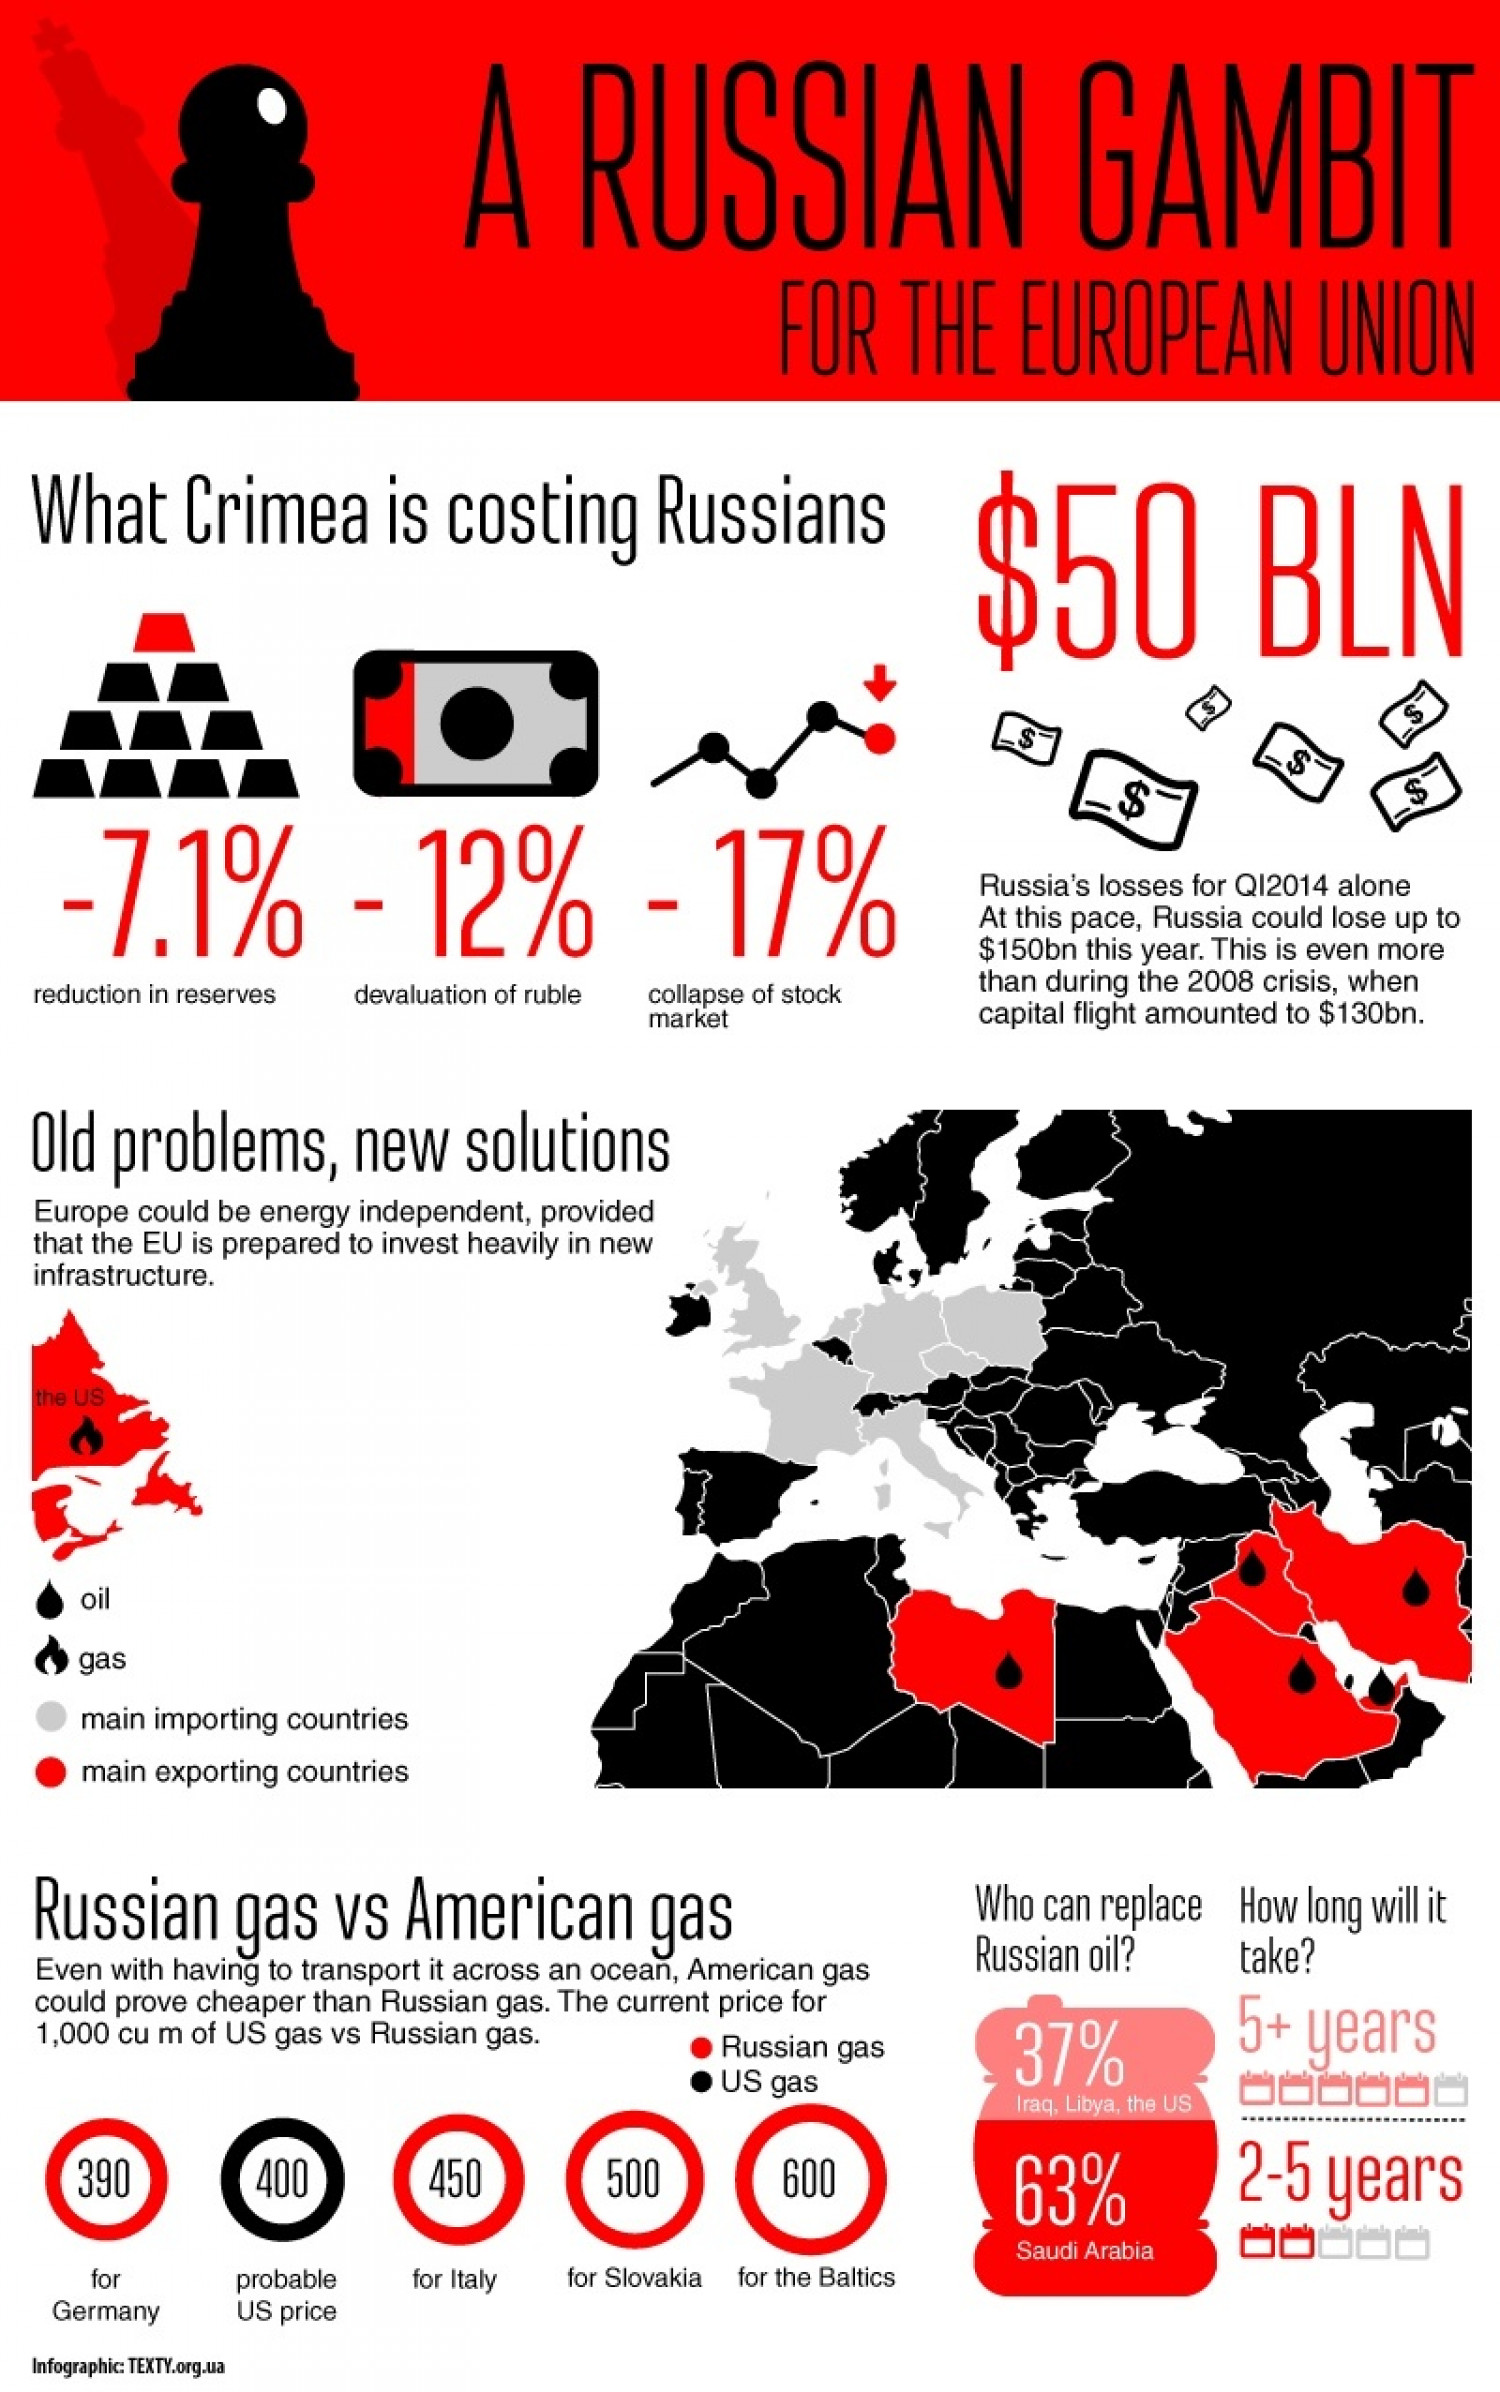 A Russian Gambit for the European Union Infographic